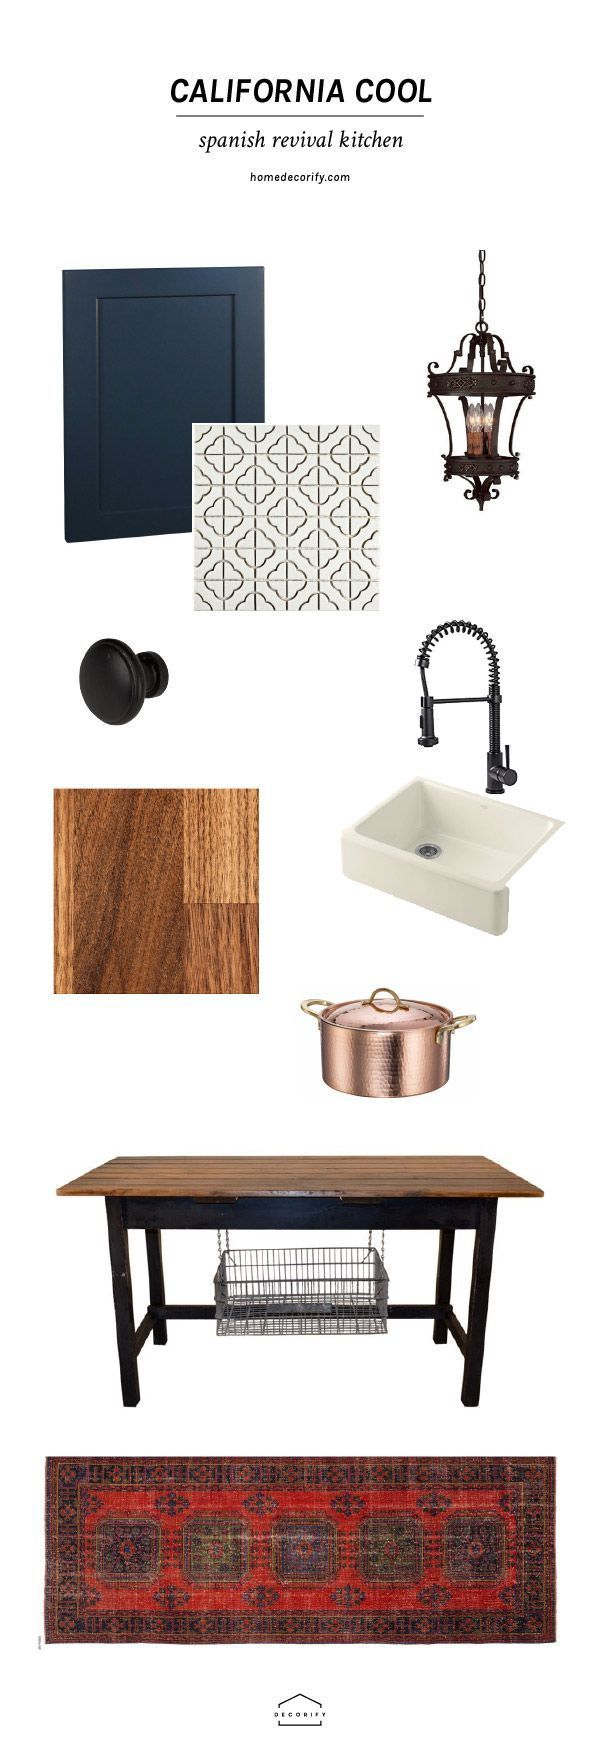 Learn all the key steps in creating a modern, Spanish revival kitchen for your home. Infuse old world Spanish influences with modern colors and lines.